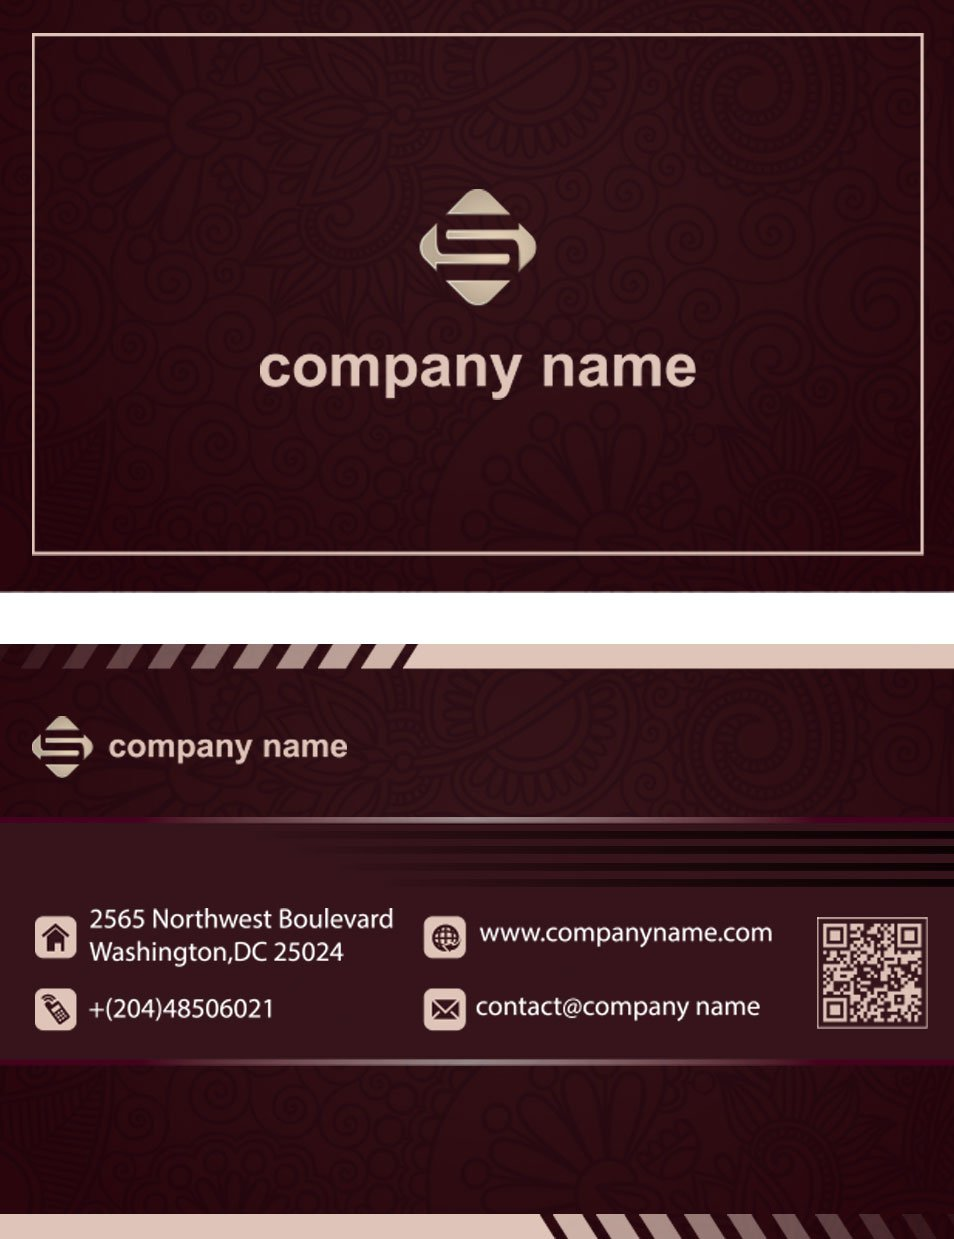 Full Color Business Card Template